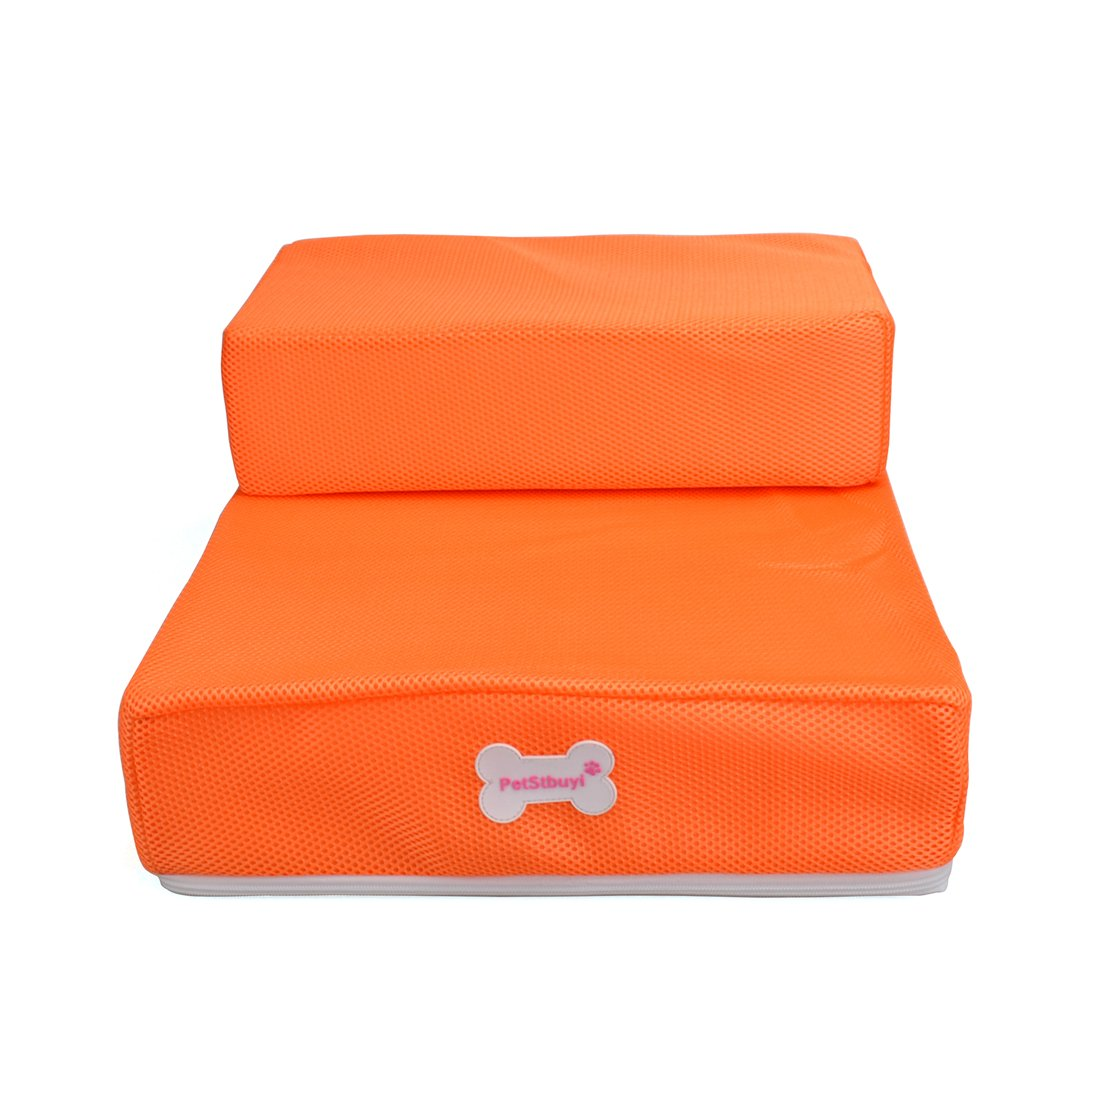 Jinshou 2 Steps Folding Pet Stairs Ramp Ladder Removable Cover for Cats Dogs Orange